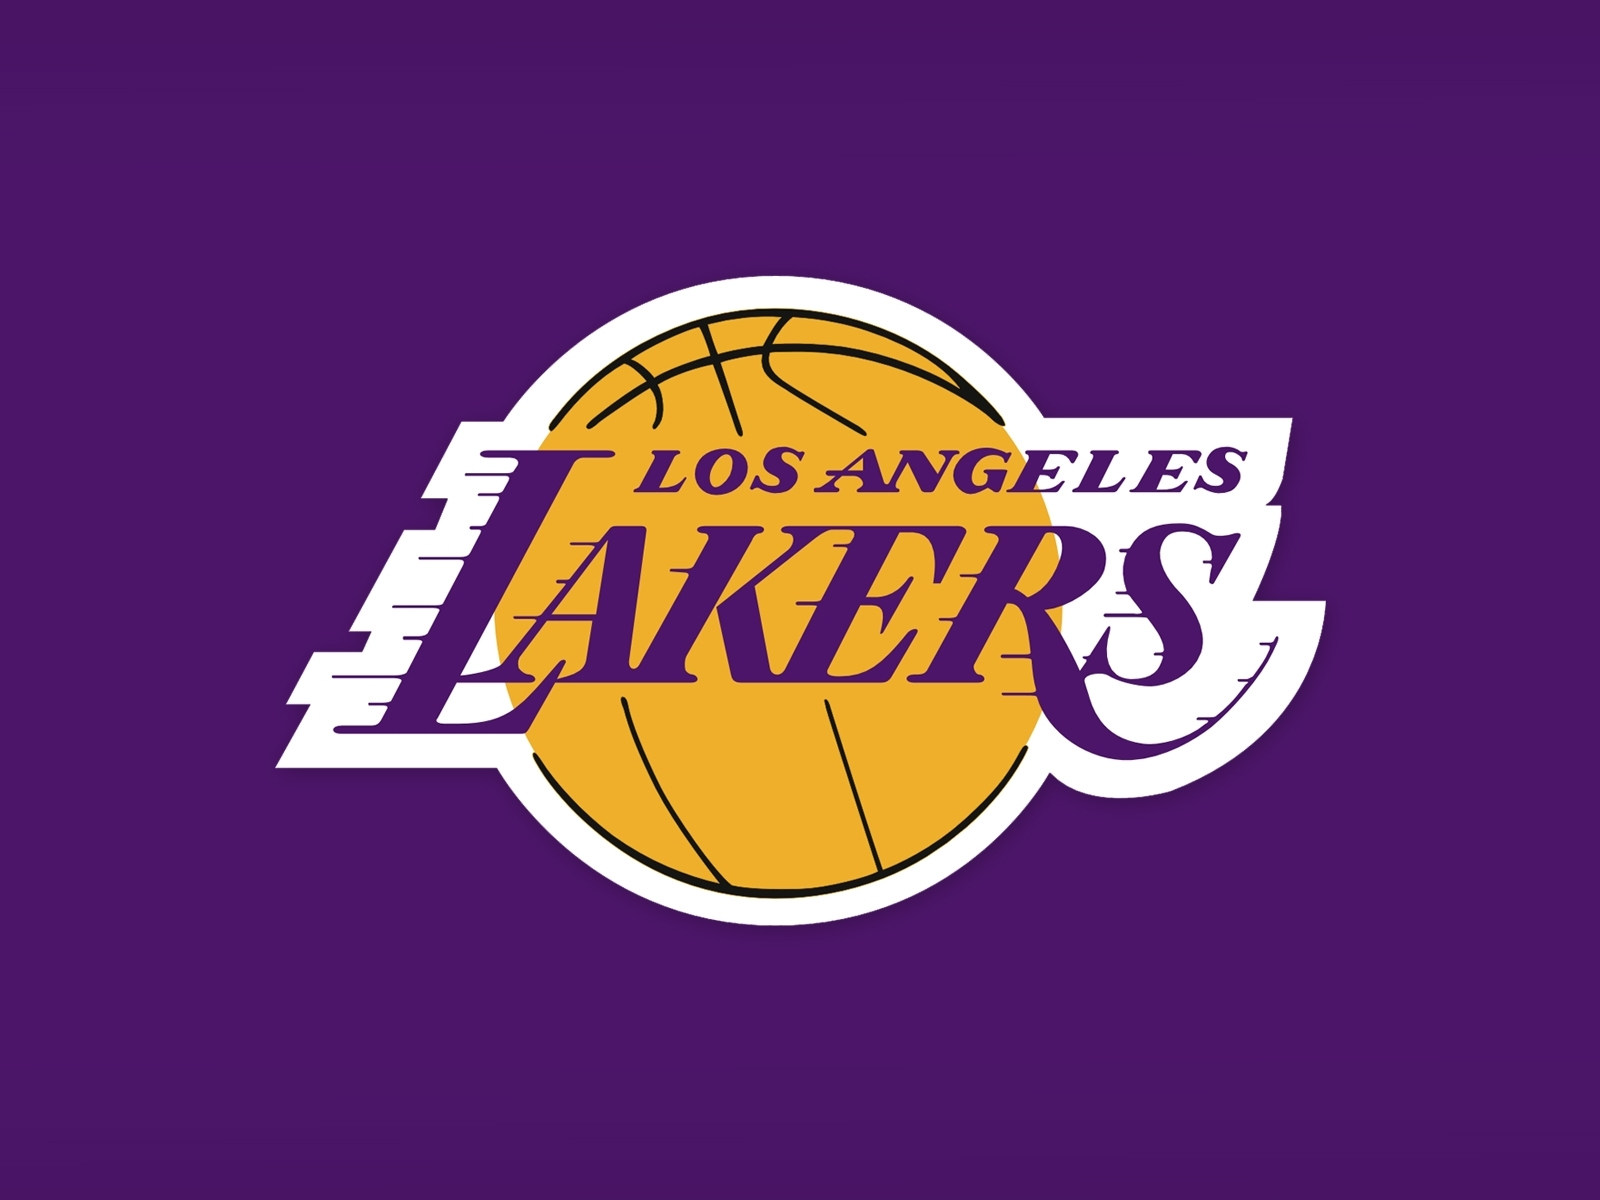 lakers-logo-1600x1200-wallpaper - basketsession - le meilleur de